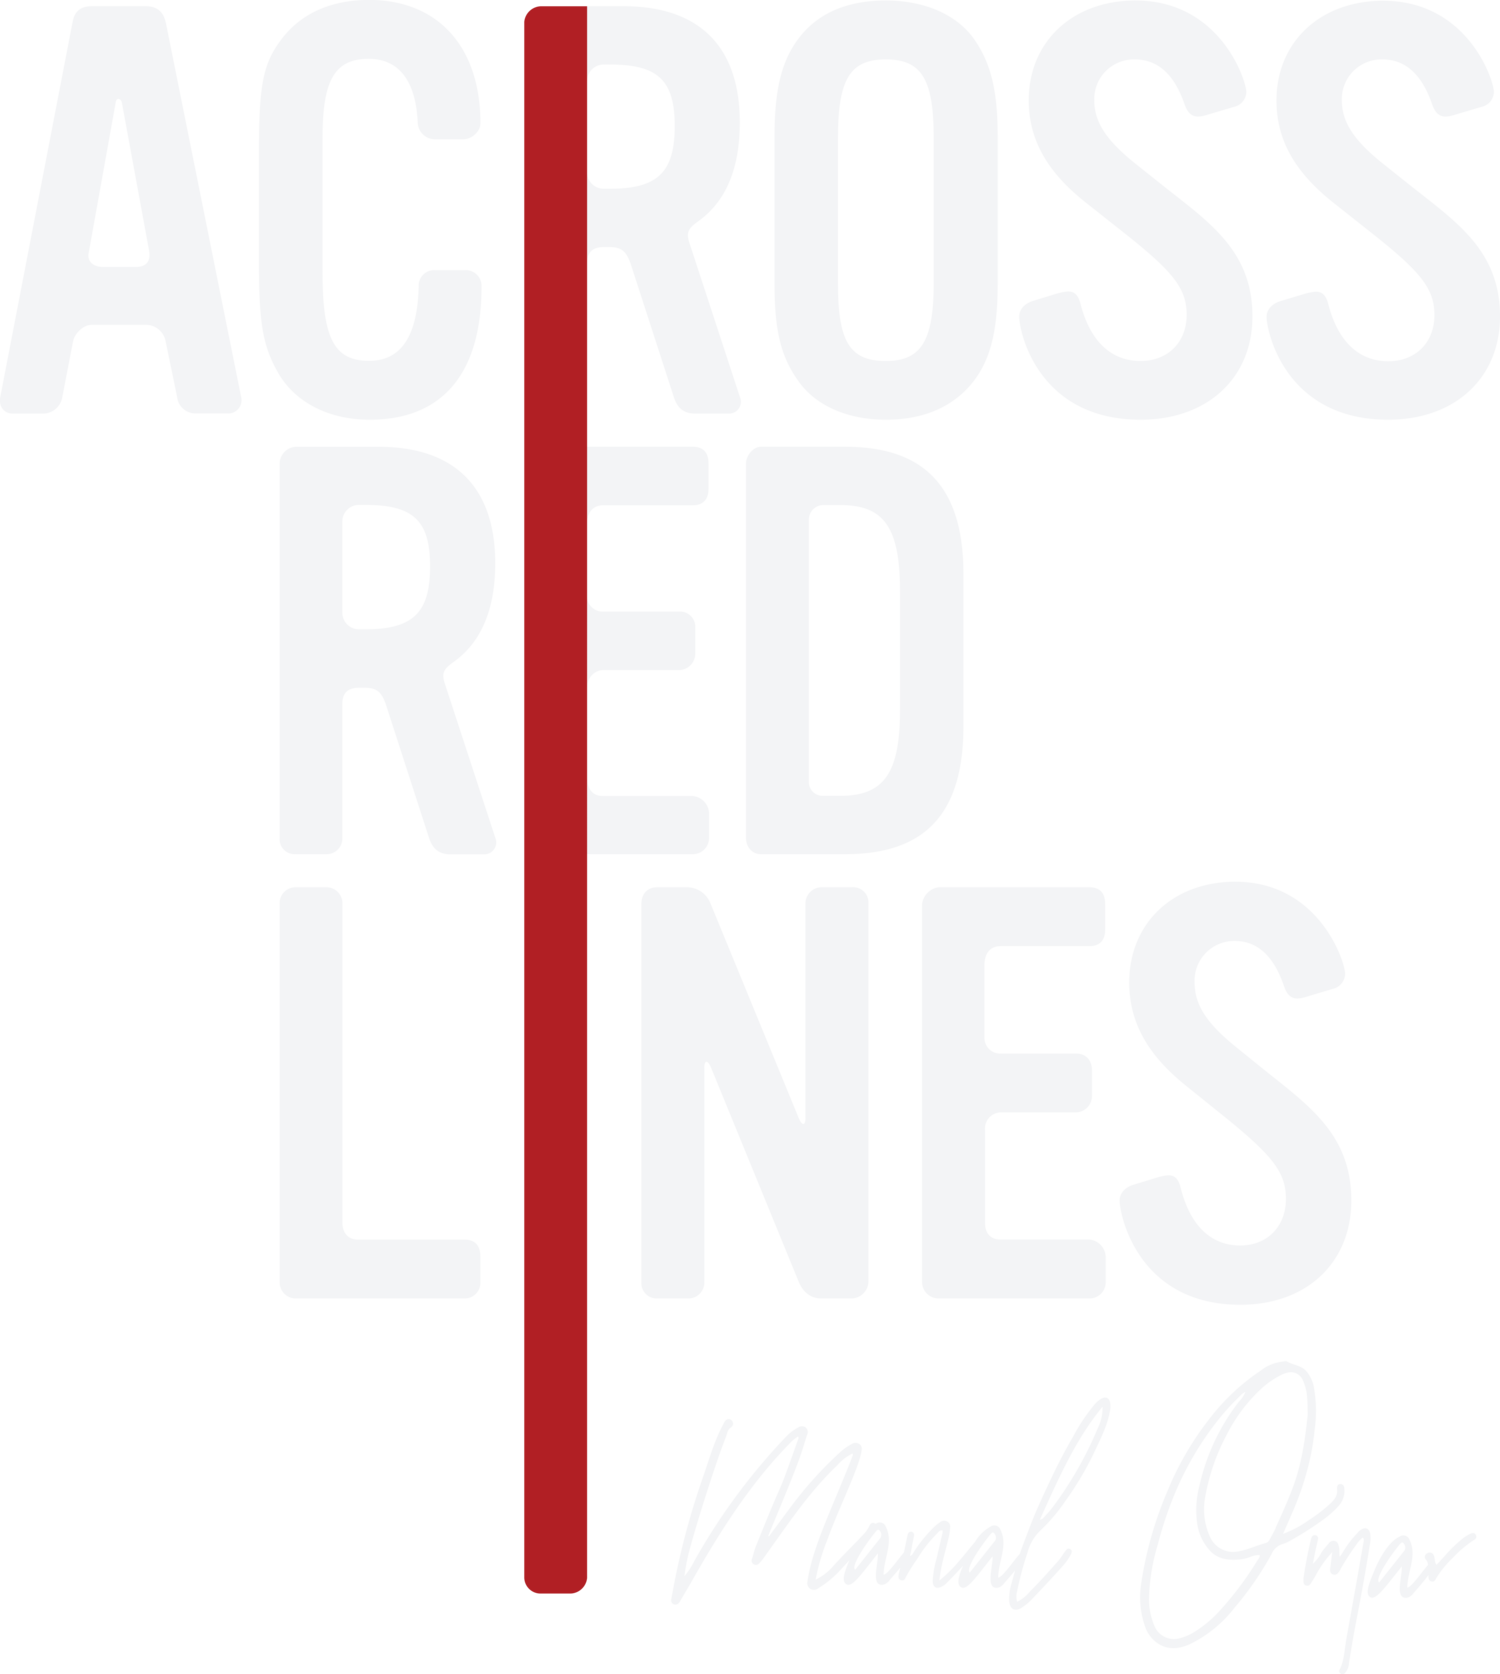 Across Red Lines